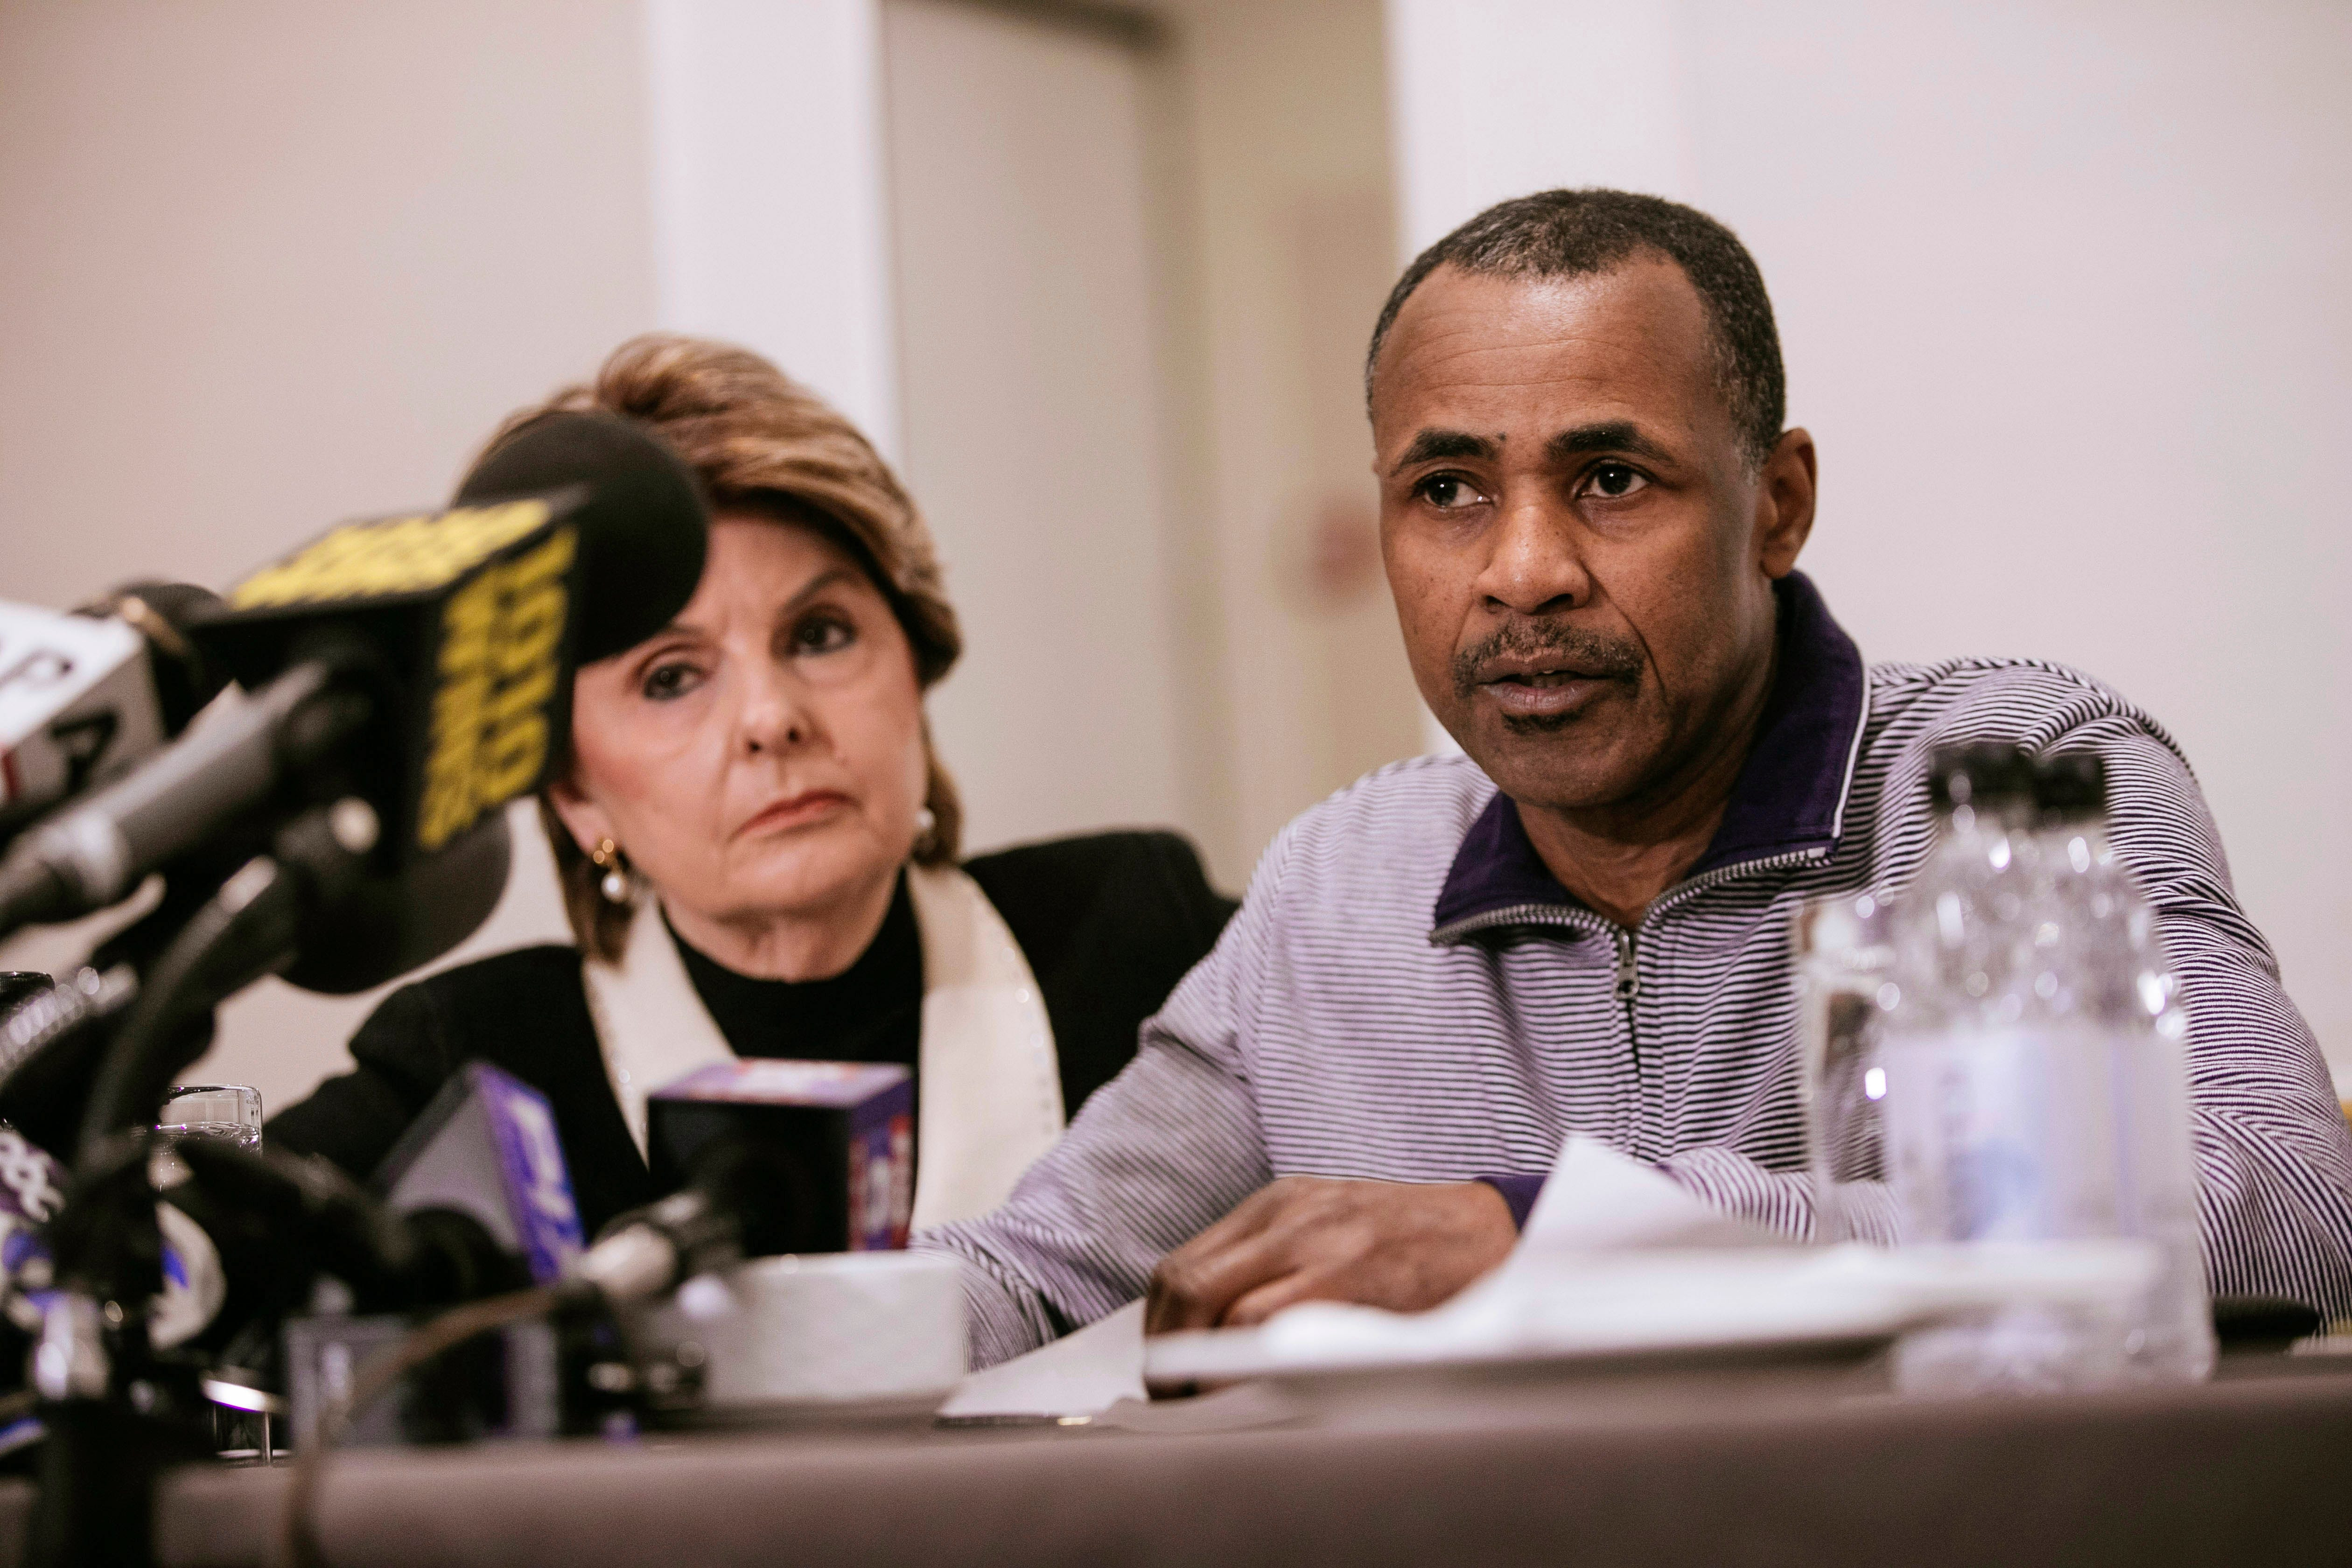 Gloria Allred reveals she's given investigators what looks like a third R. Kelly sex tape